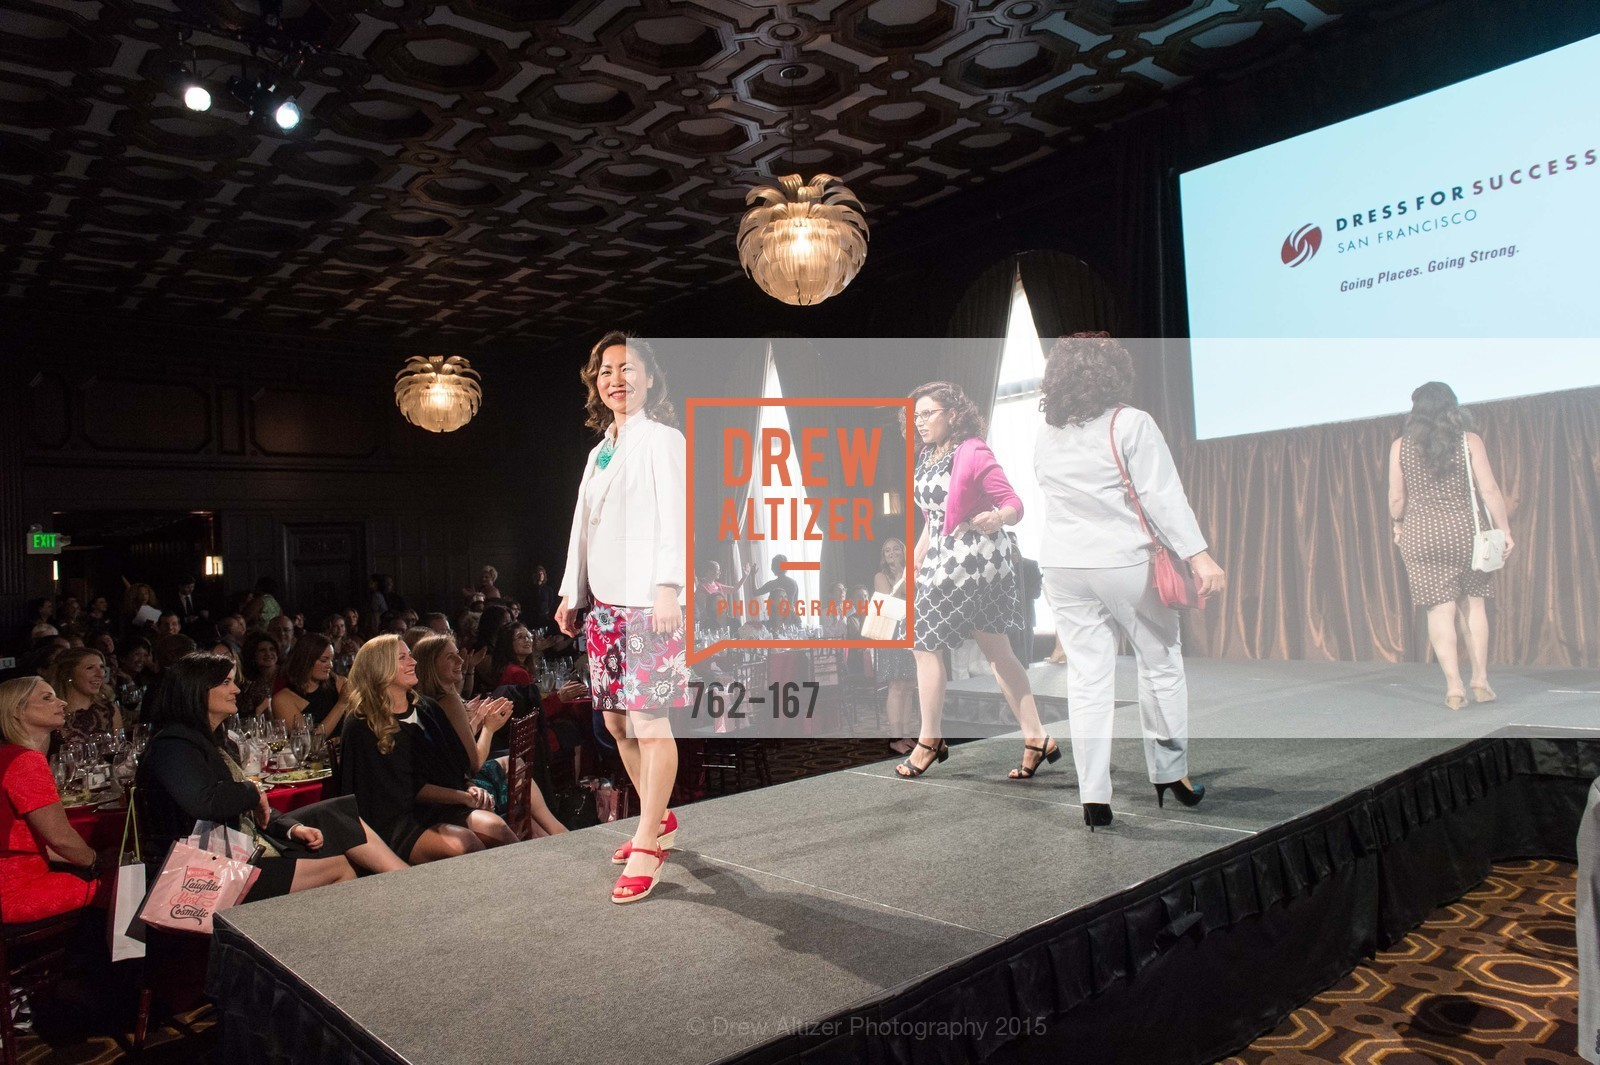 Fashion Show, Dress for Success San Francisco Hosts the 10th Annual